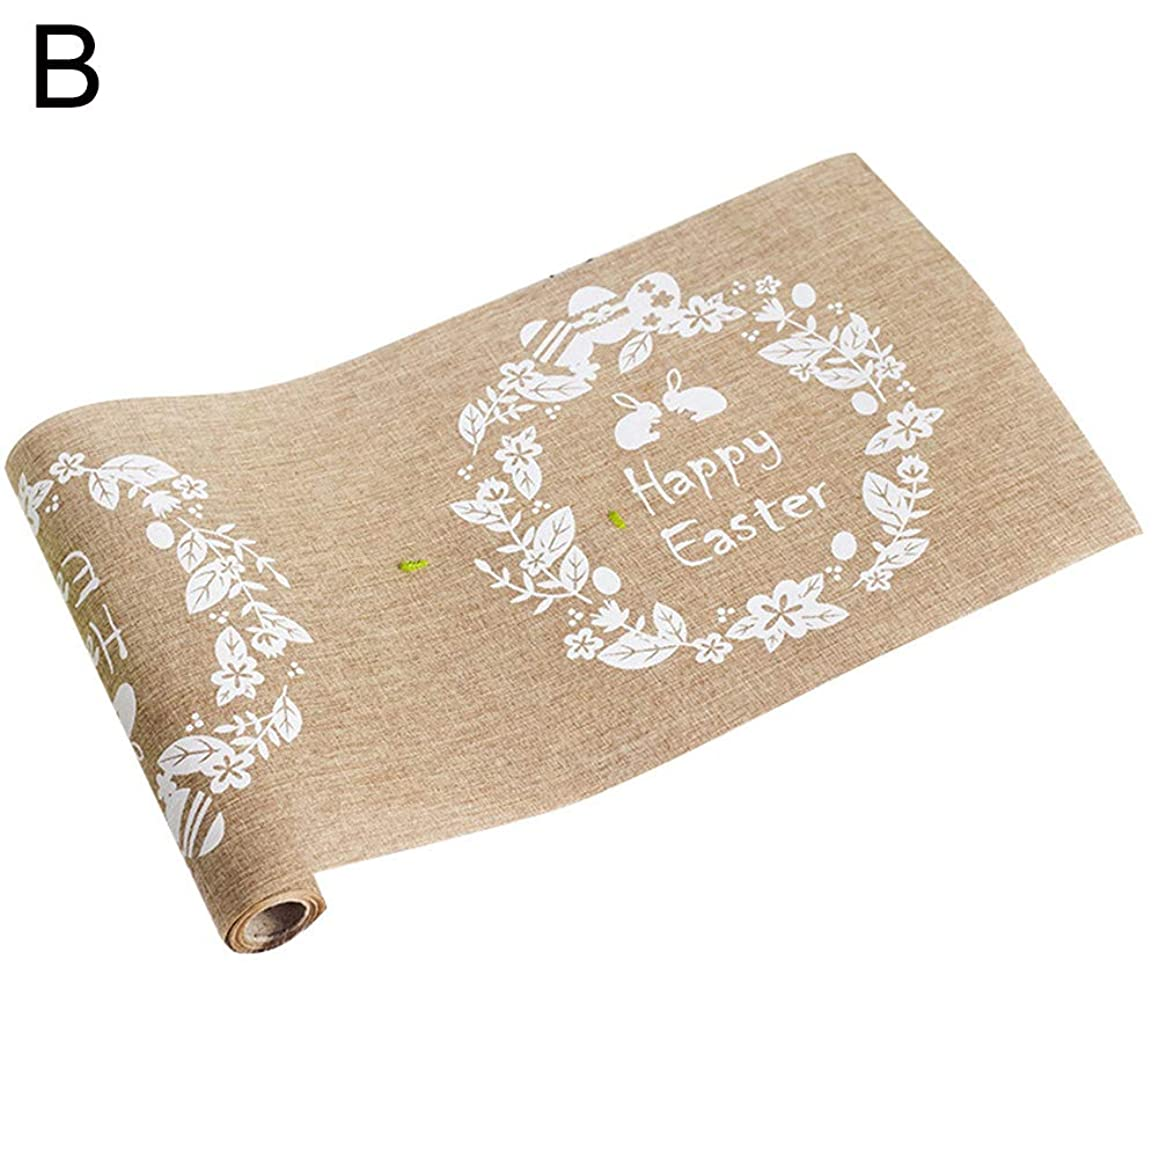 Table Runner Maserfaliw Nordic Easter Rabbit Eggs Printed Linen Cloth Table Runner Tablecloth Decoration - B, Hot Home Decorations, Easter And Other Holiday Gifts.